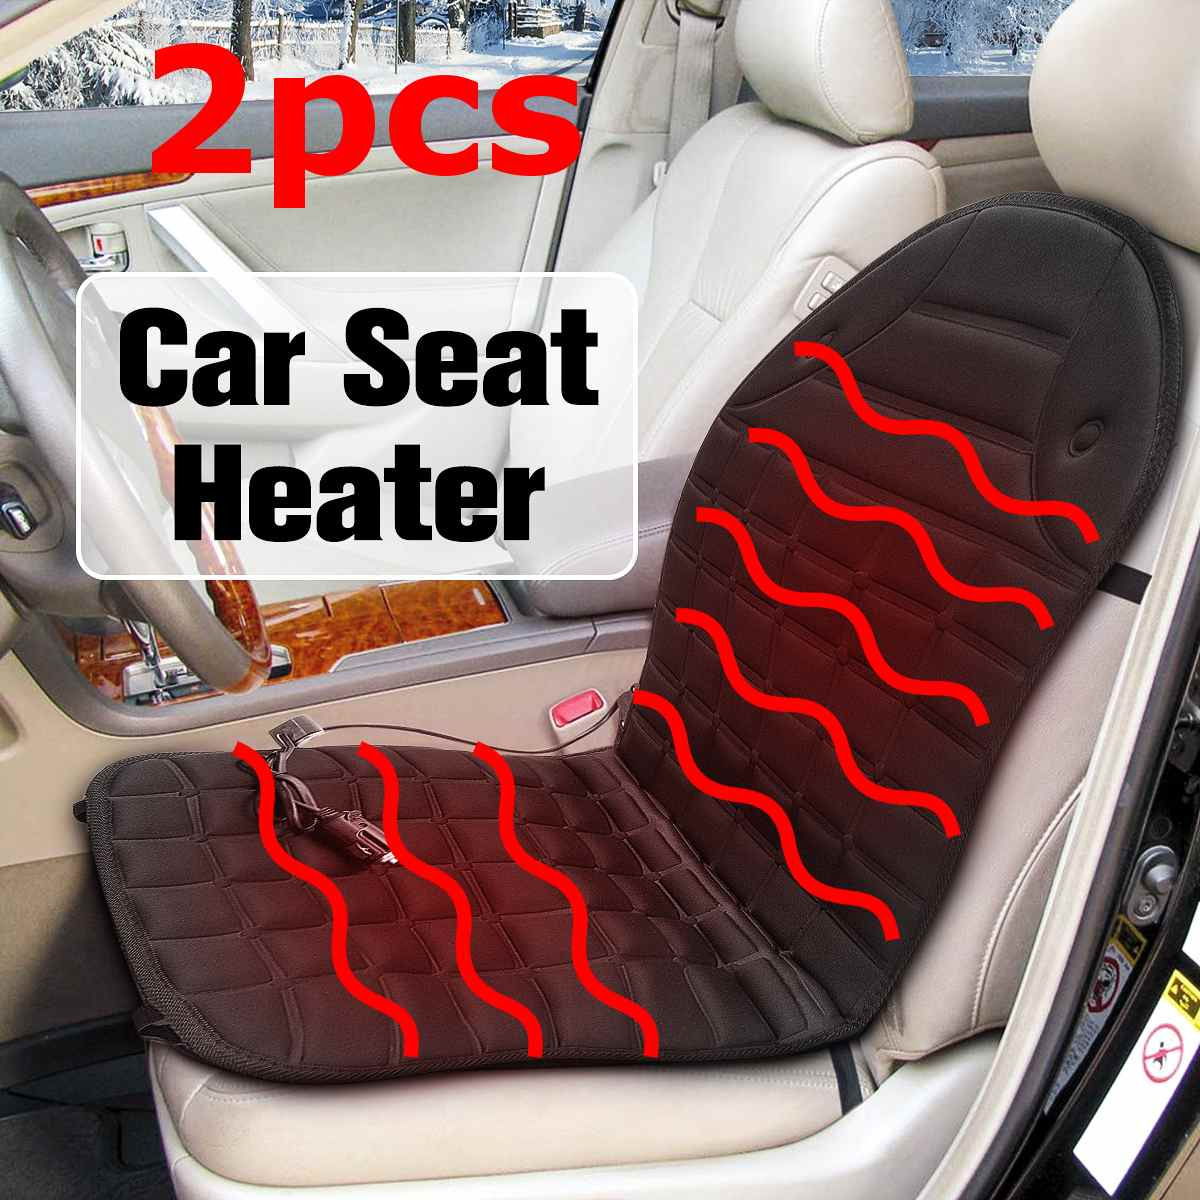 Cushion Heater-Warmer Seat Car-Seat-Cover Fast-Heated Winter 2PCS 12V Household